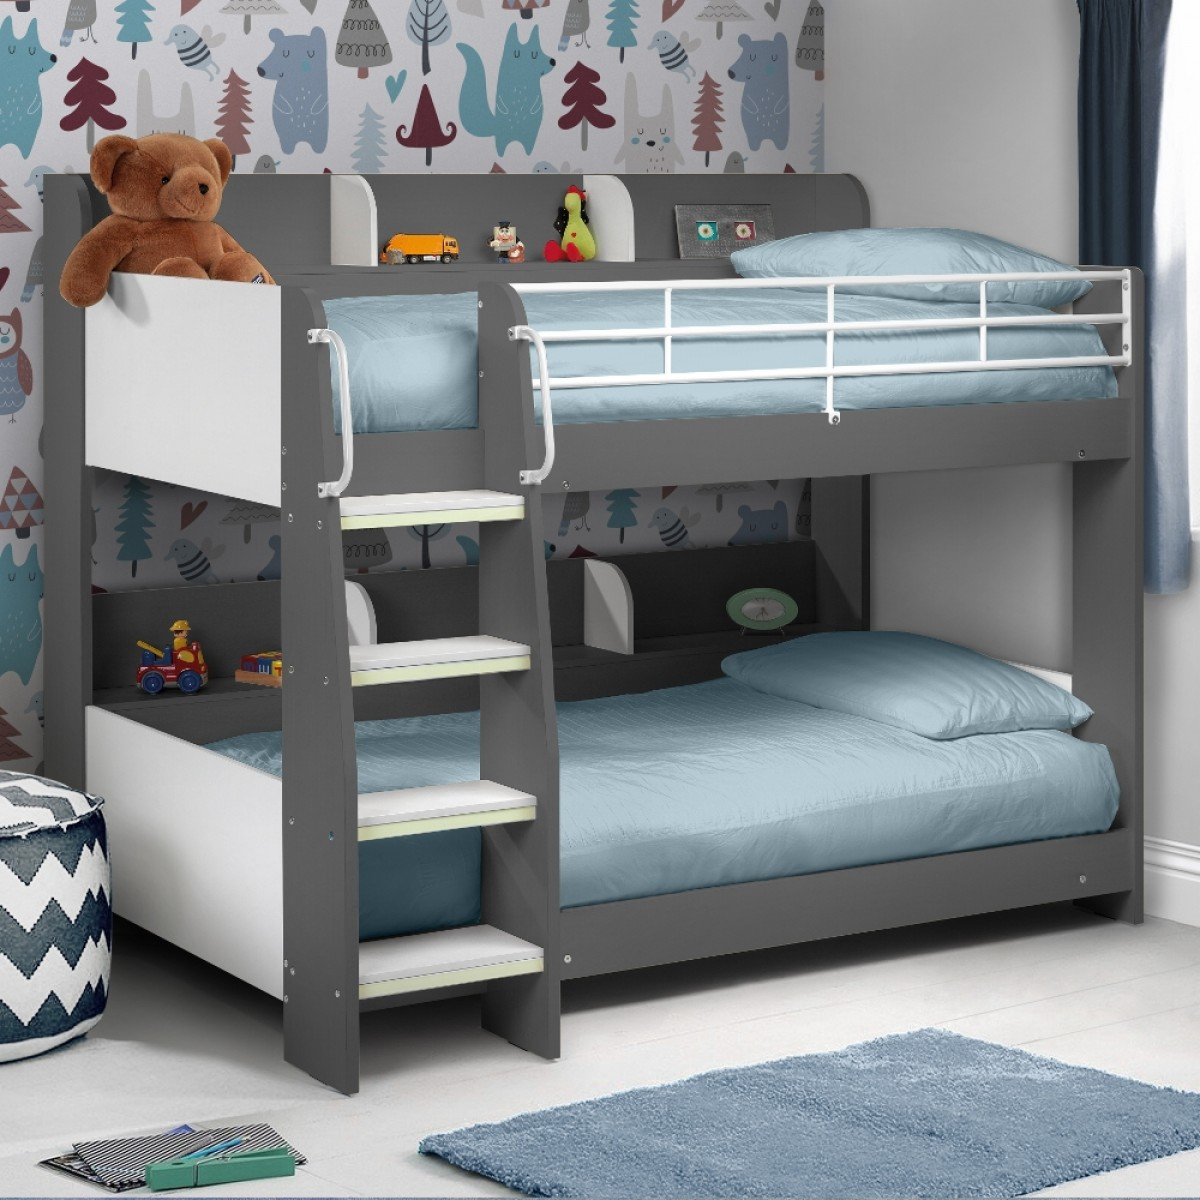 Bunk Beds For Kids Domino Grey Wooden And Metal Kids Storage Bunk Bed